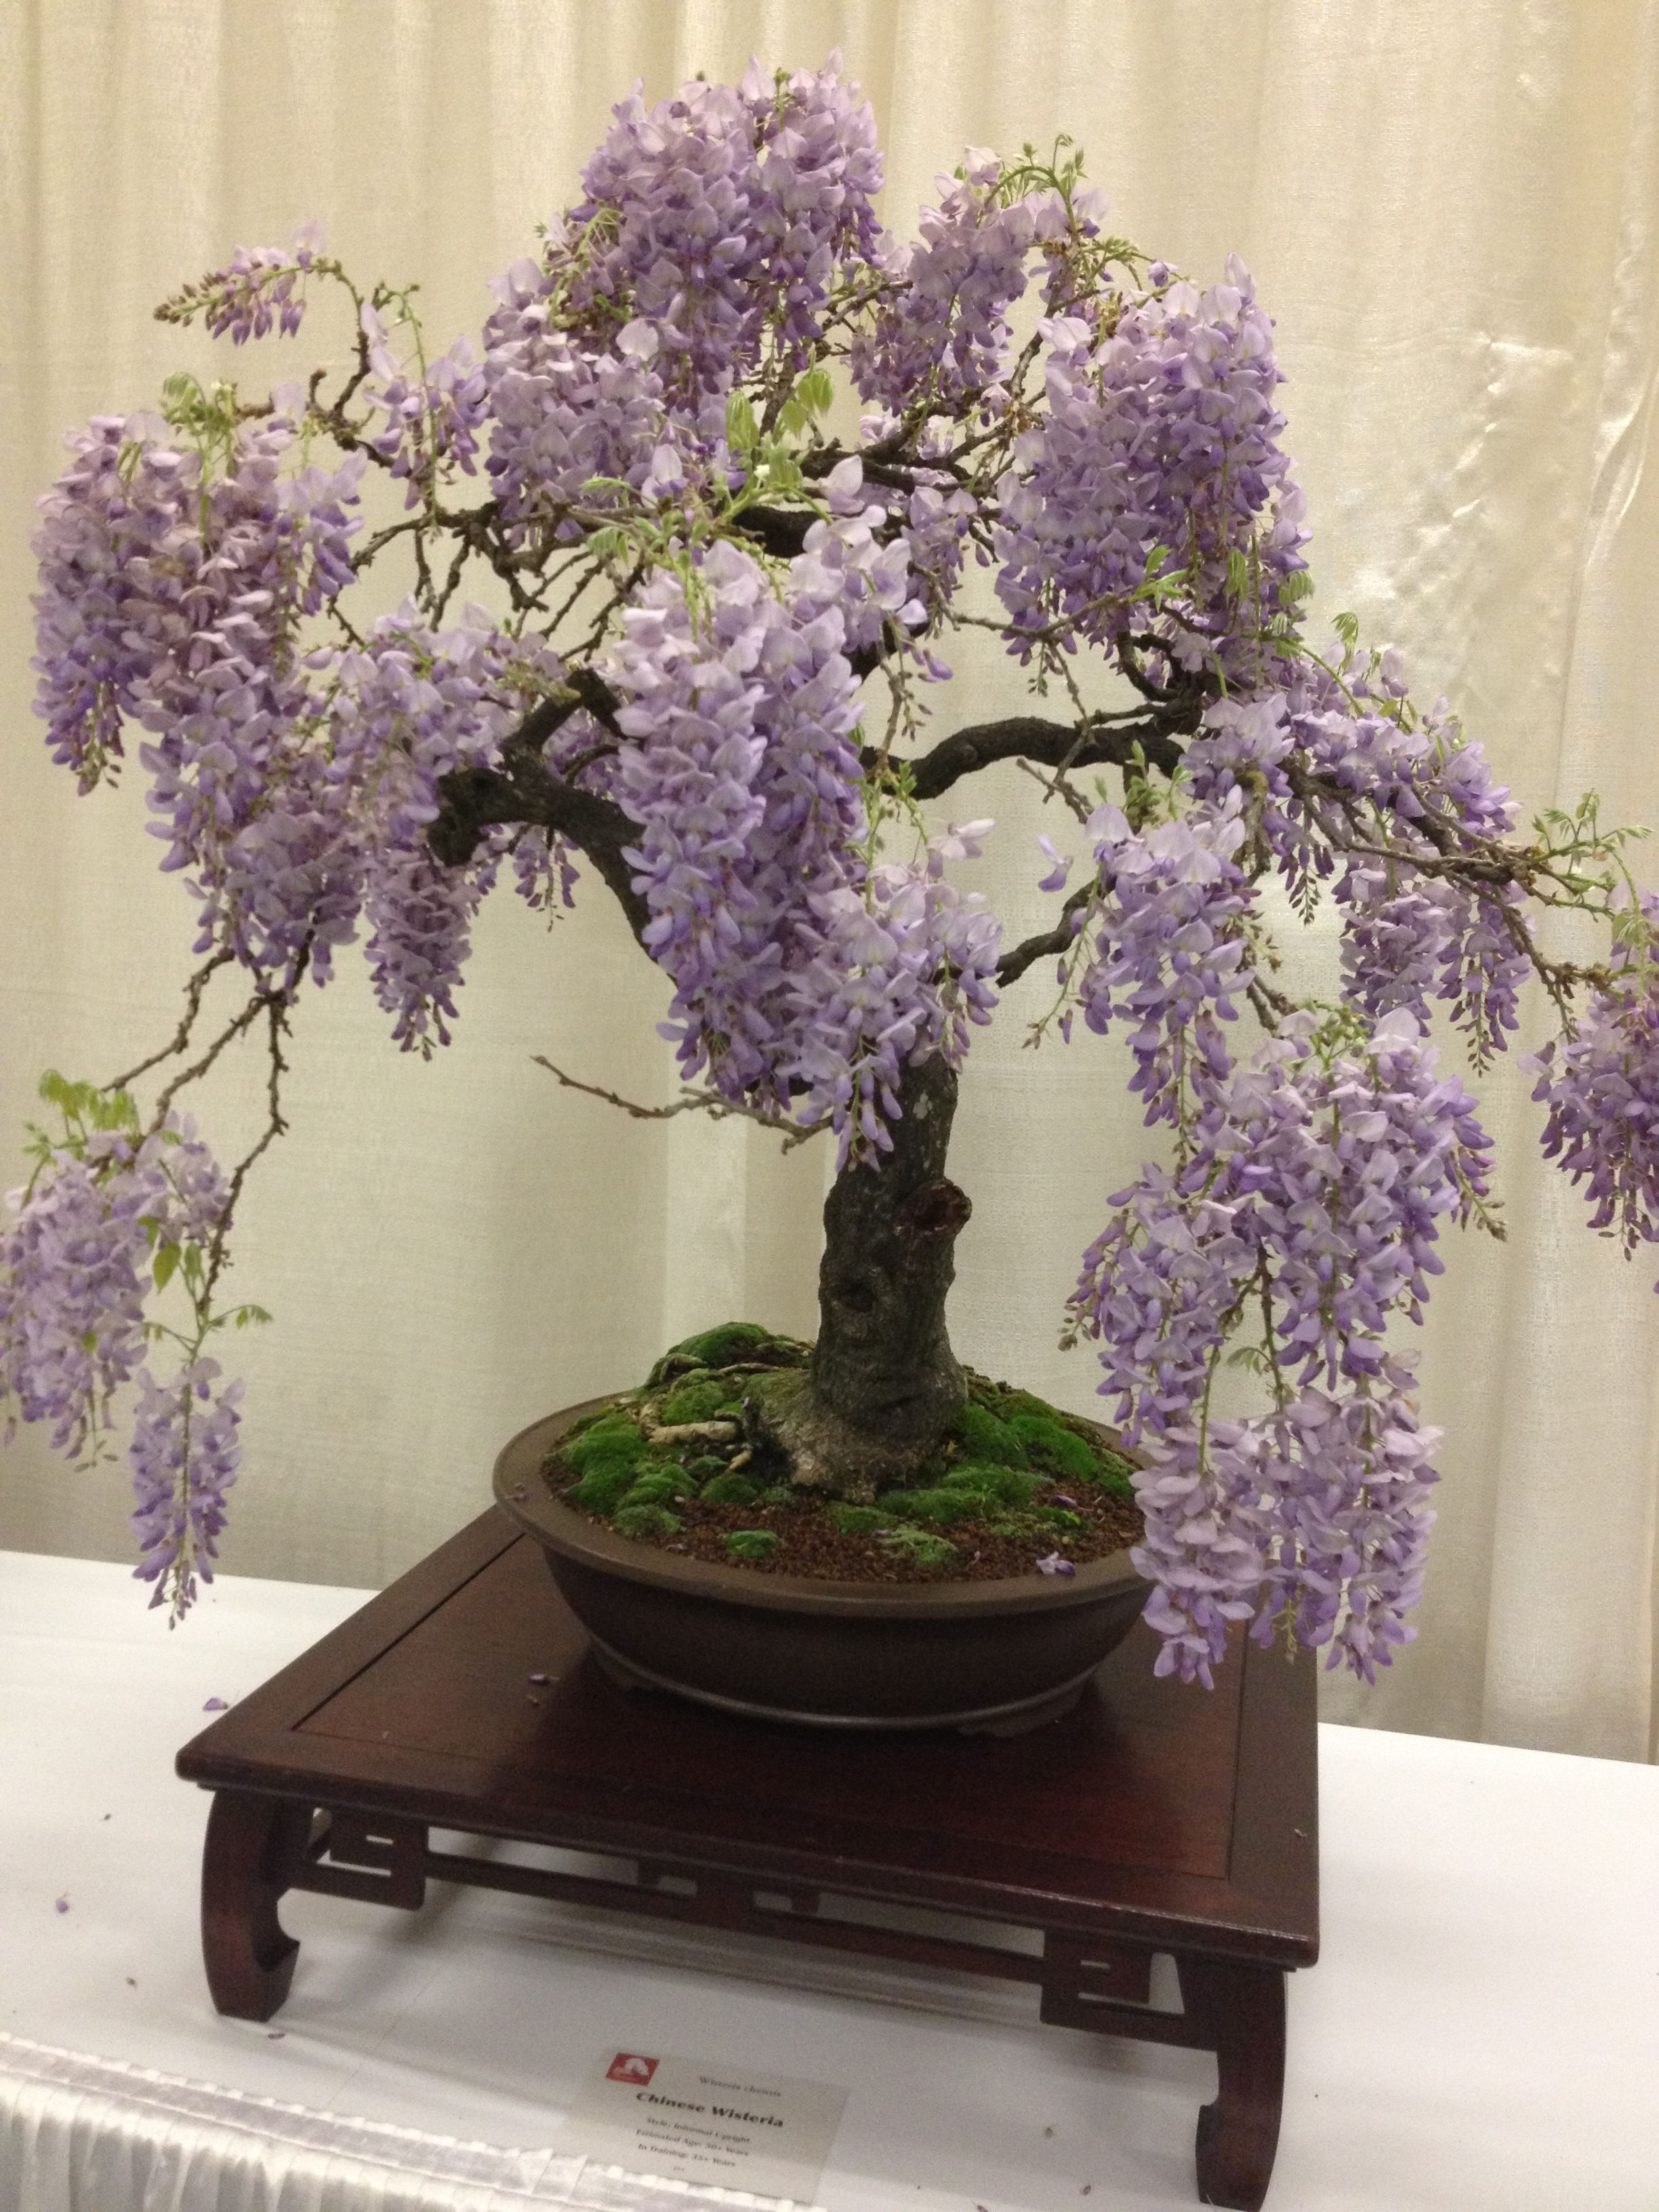 Pin By Punjapass Narongsak On Garden Inspirations Wisteria Bonsai Bonsai Plants Bonsai Tree